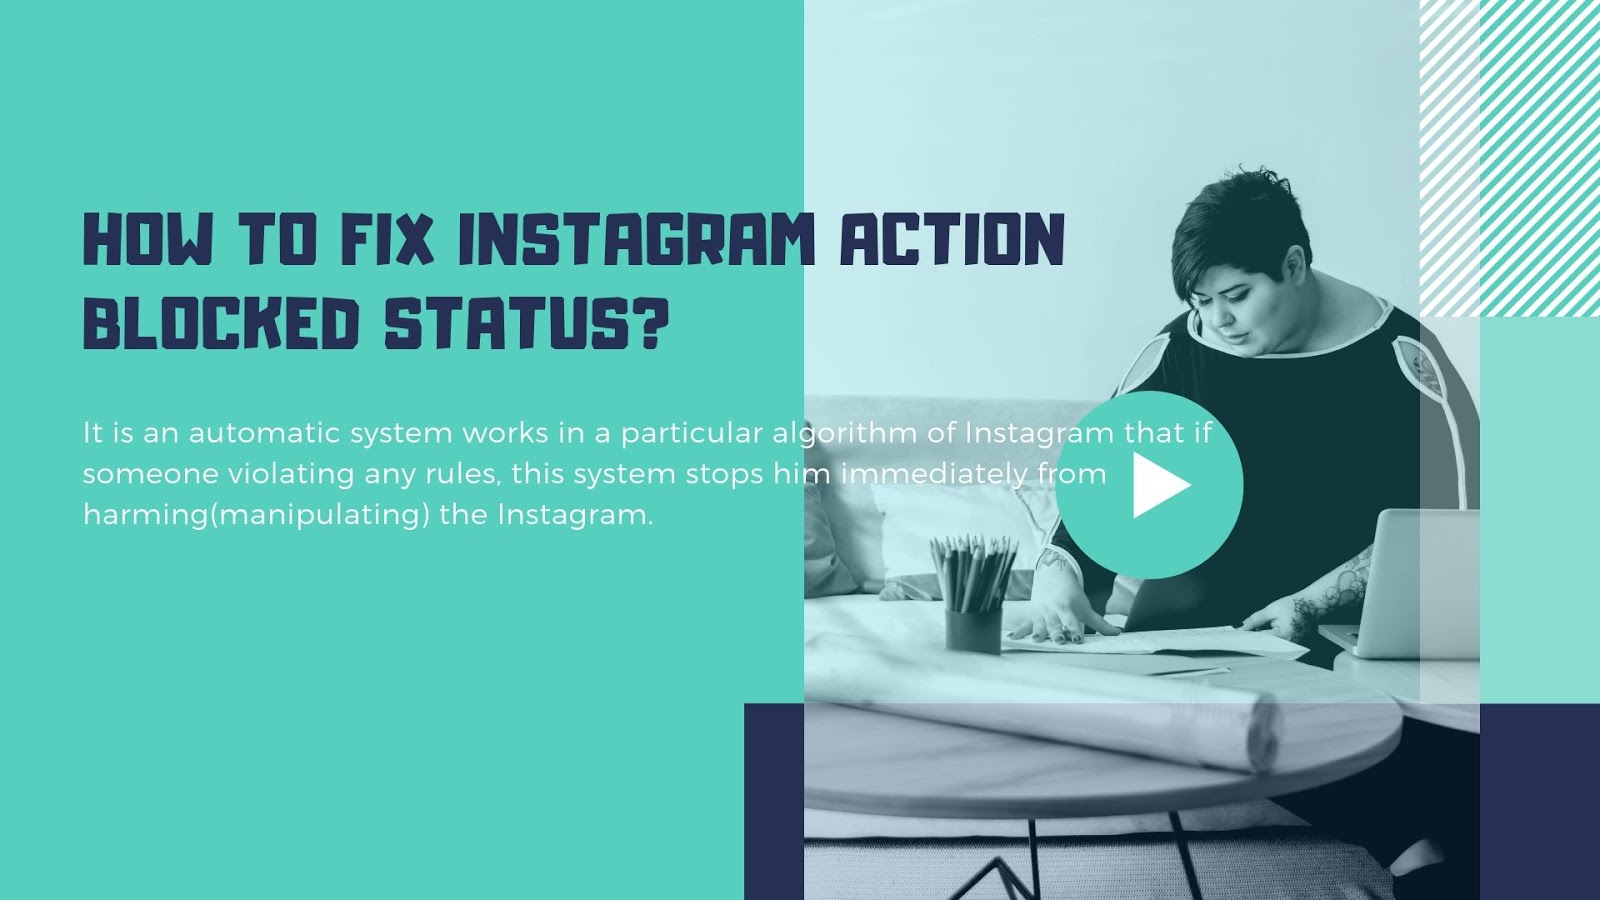 unblock Instagram Action Blocked